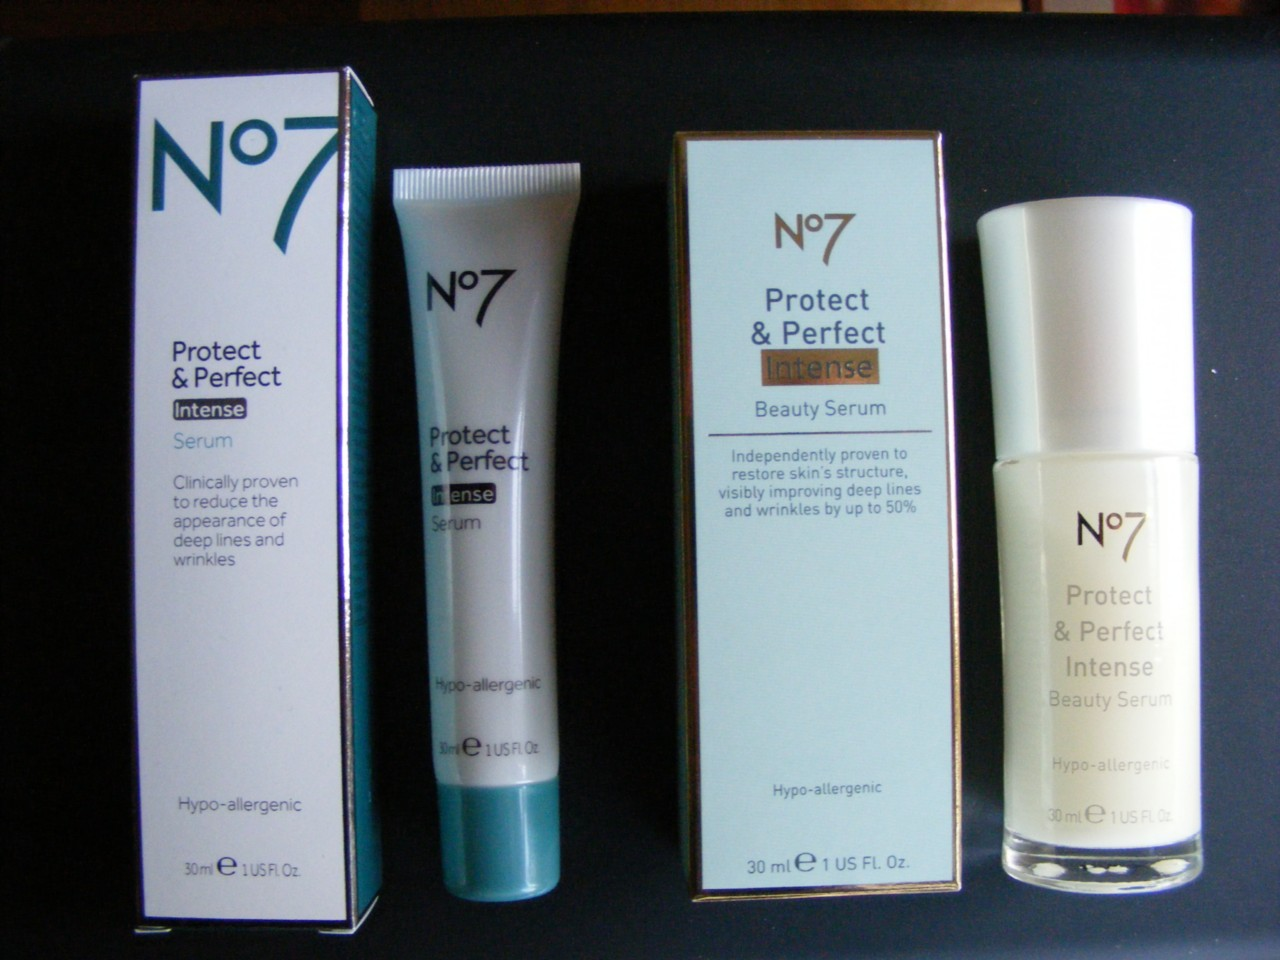 No 7 protect and perfect intense serum ingredients